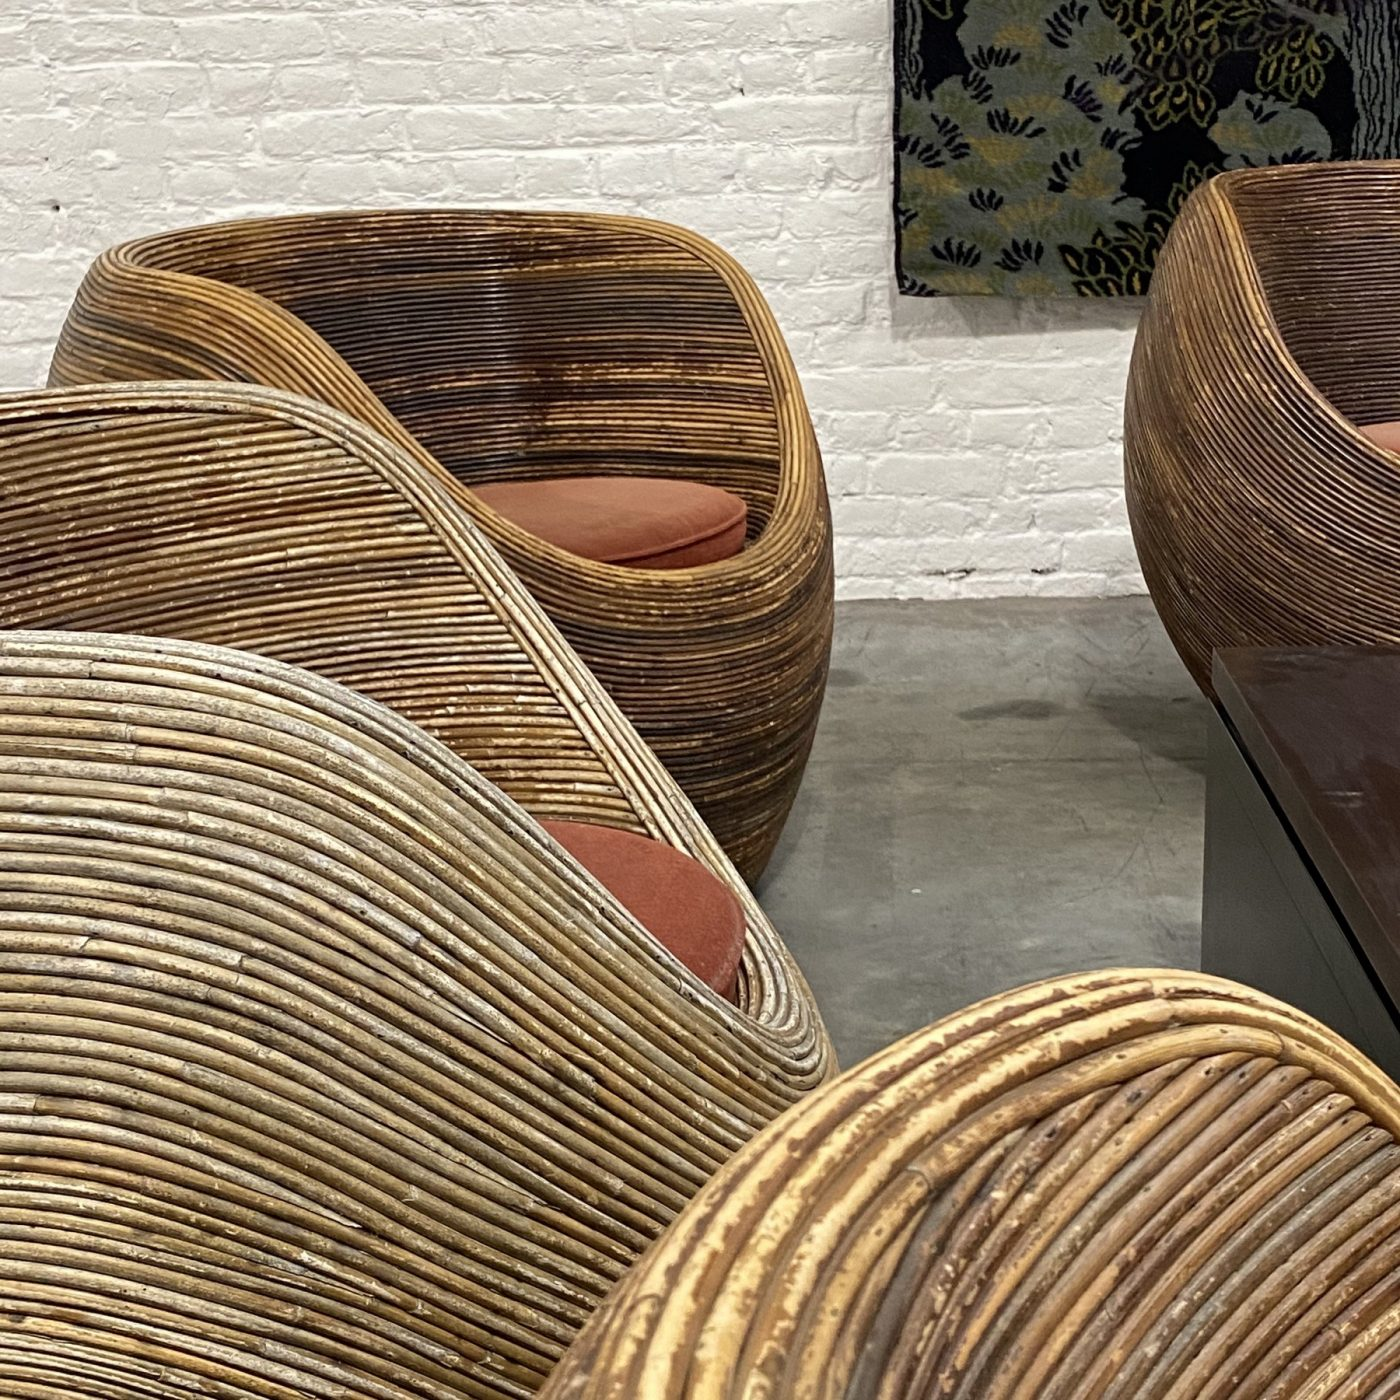 objet-vagabond-bamboo-chairs0006